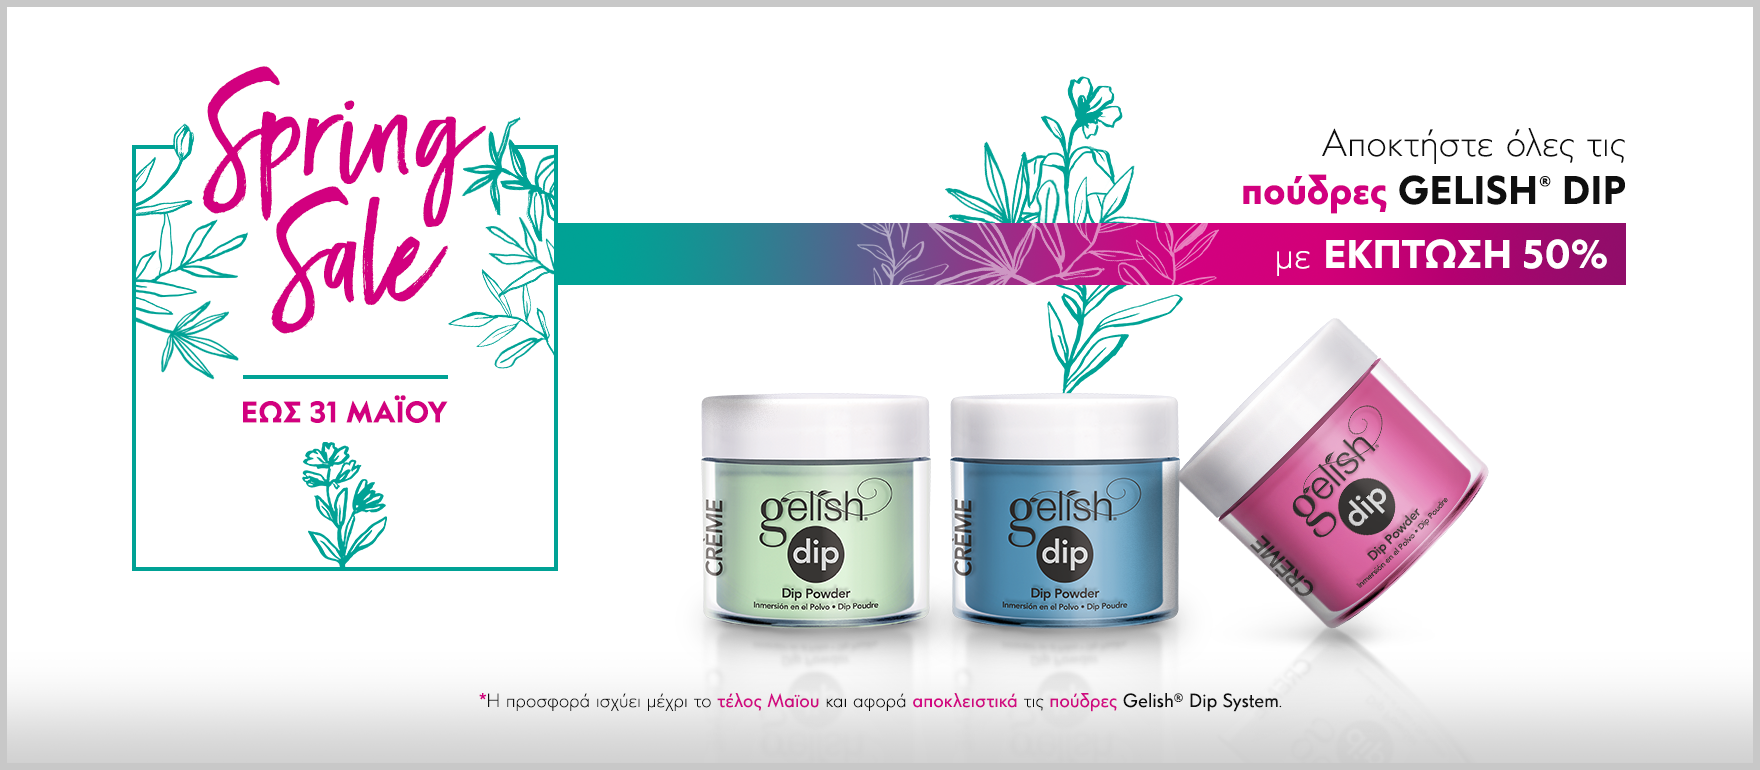 Spring Sale - Gelish Dip Powders 50% Off